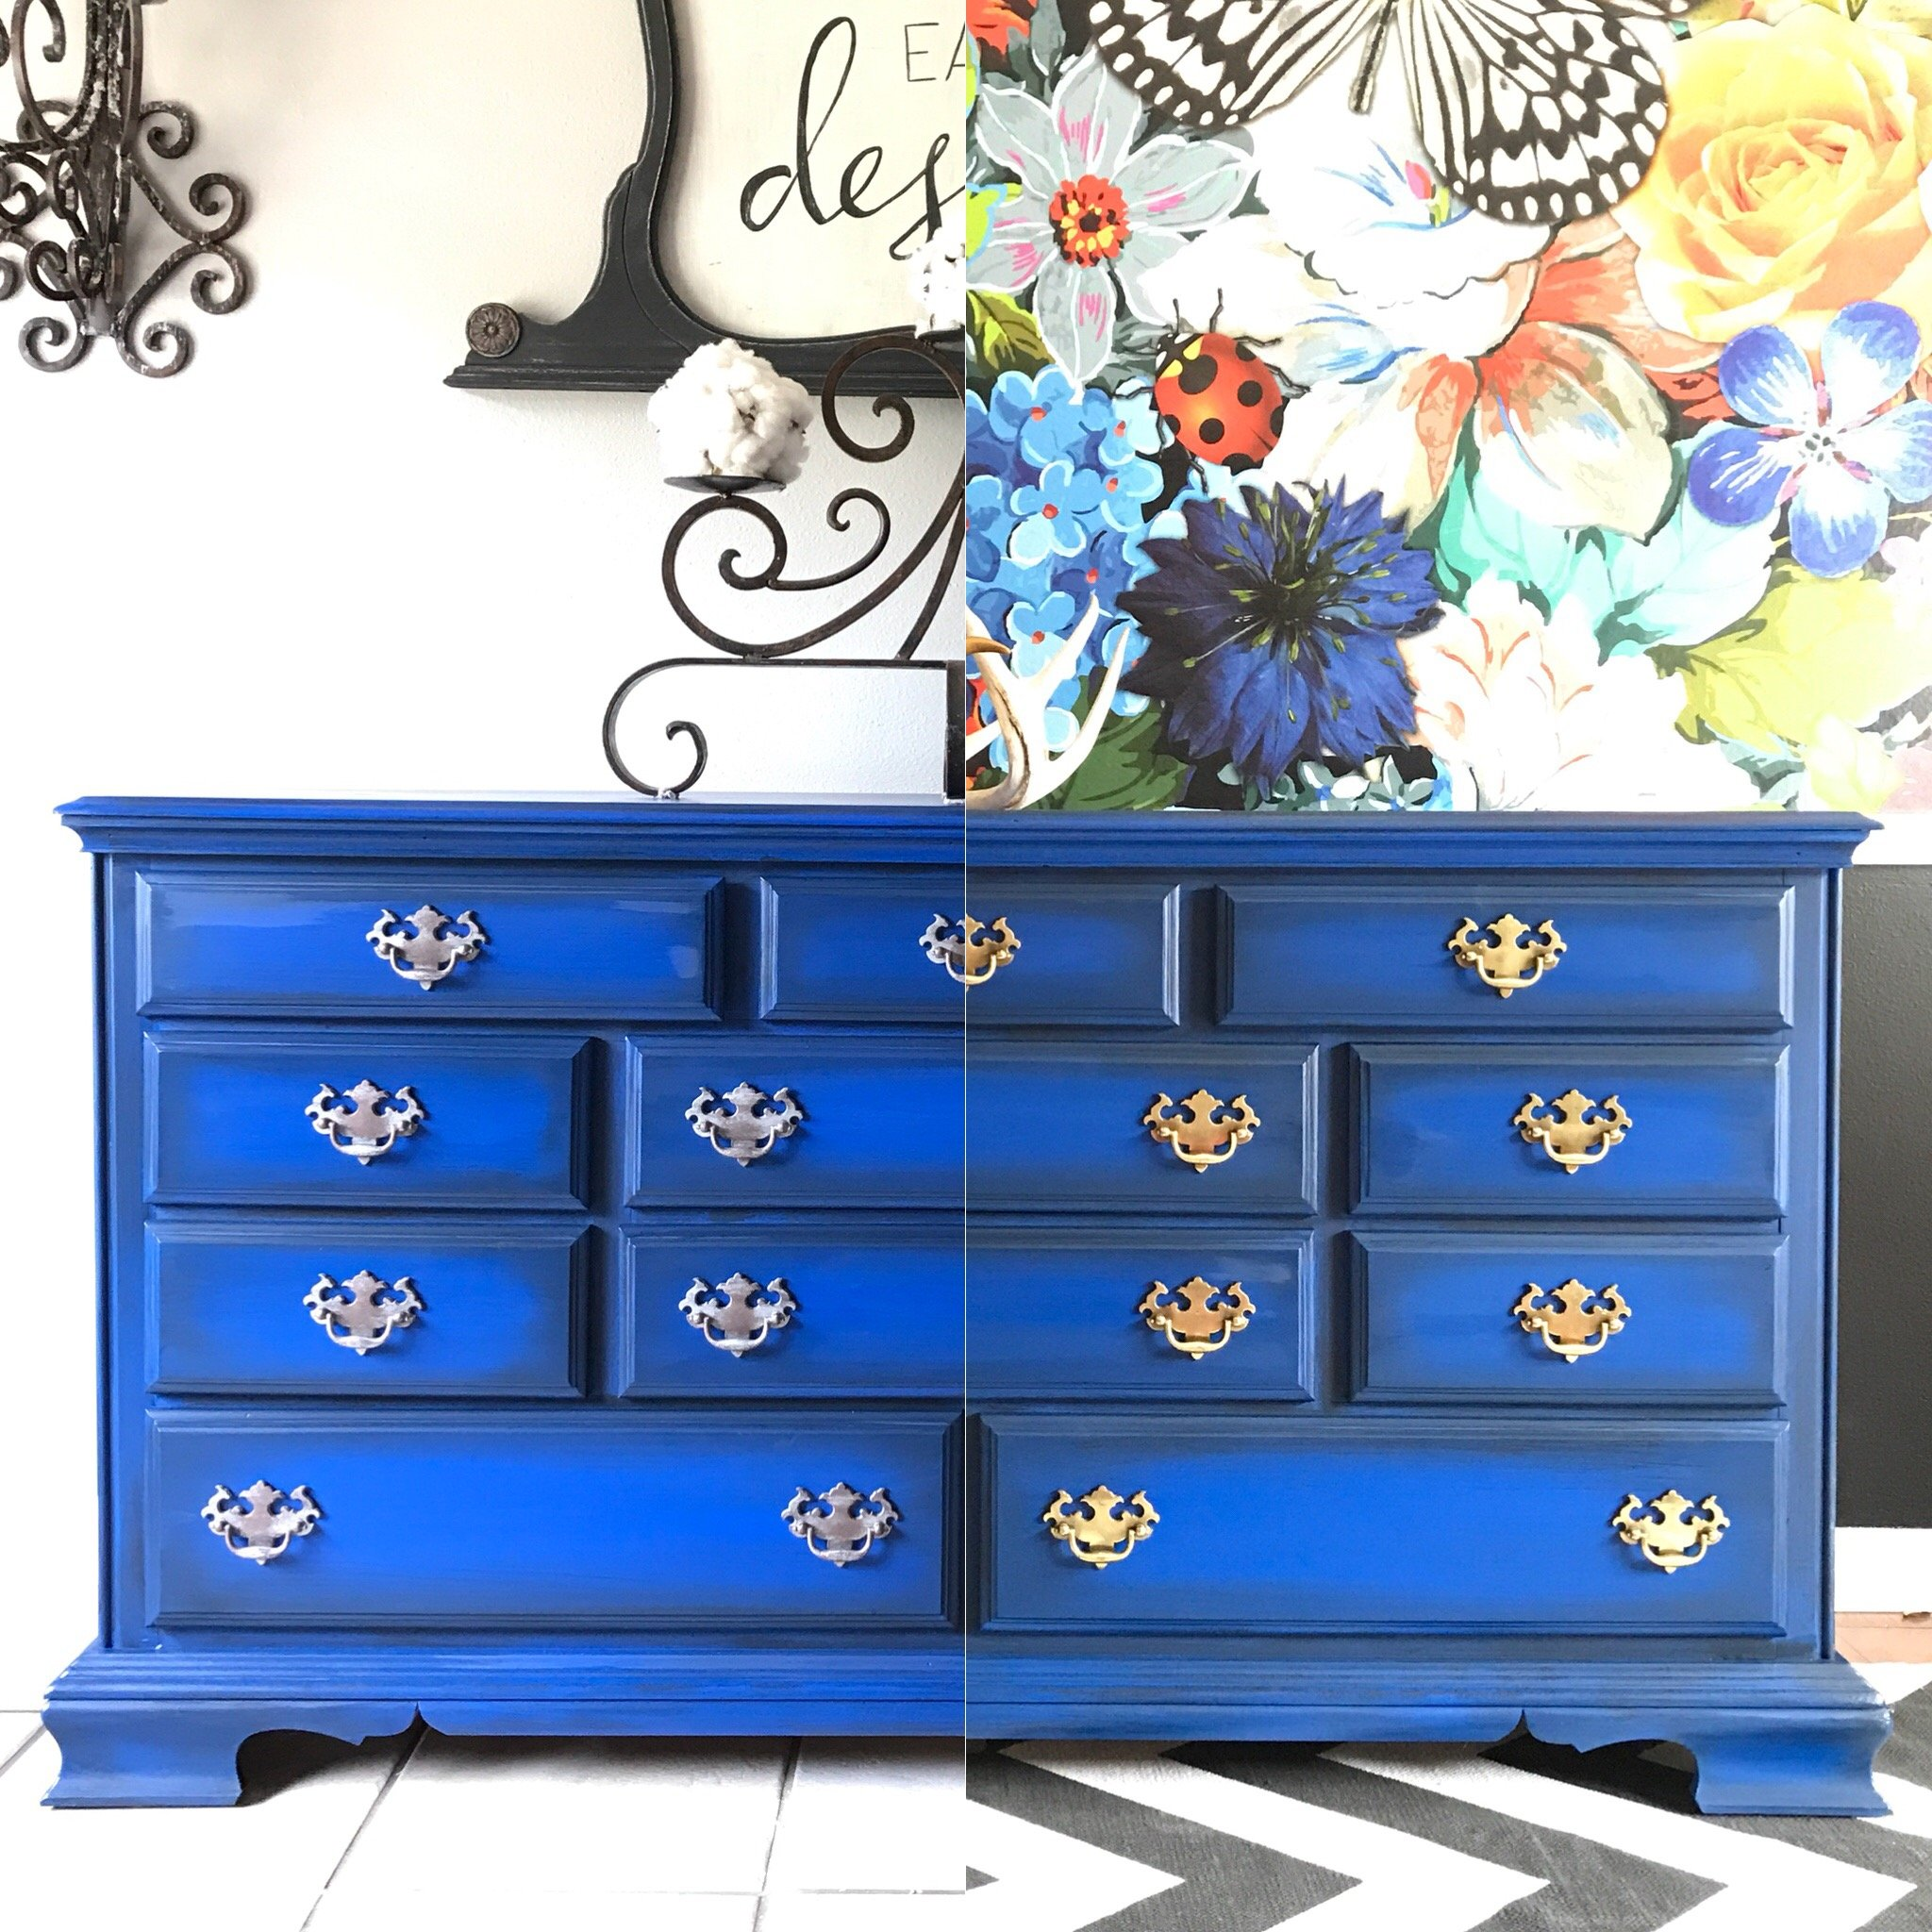 Cobalt Blue Dresser with Metallic Handles Tracey's Fancy